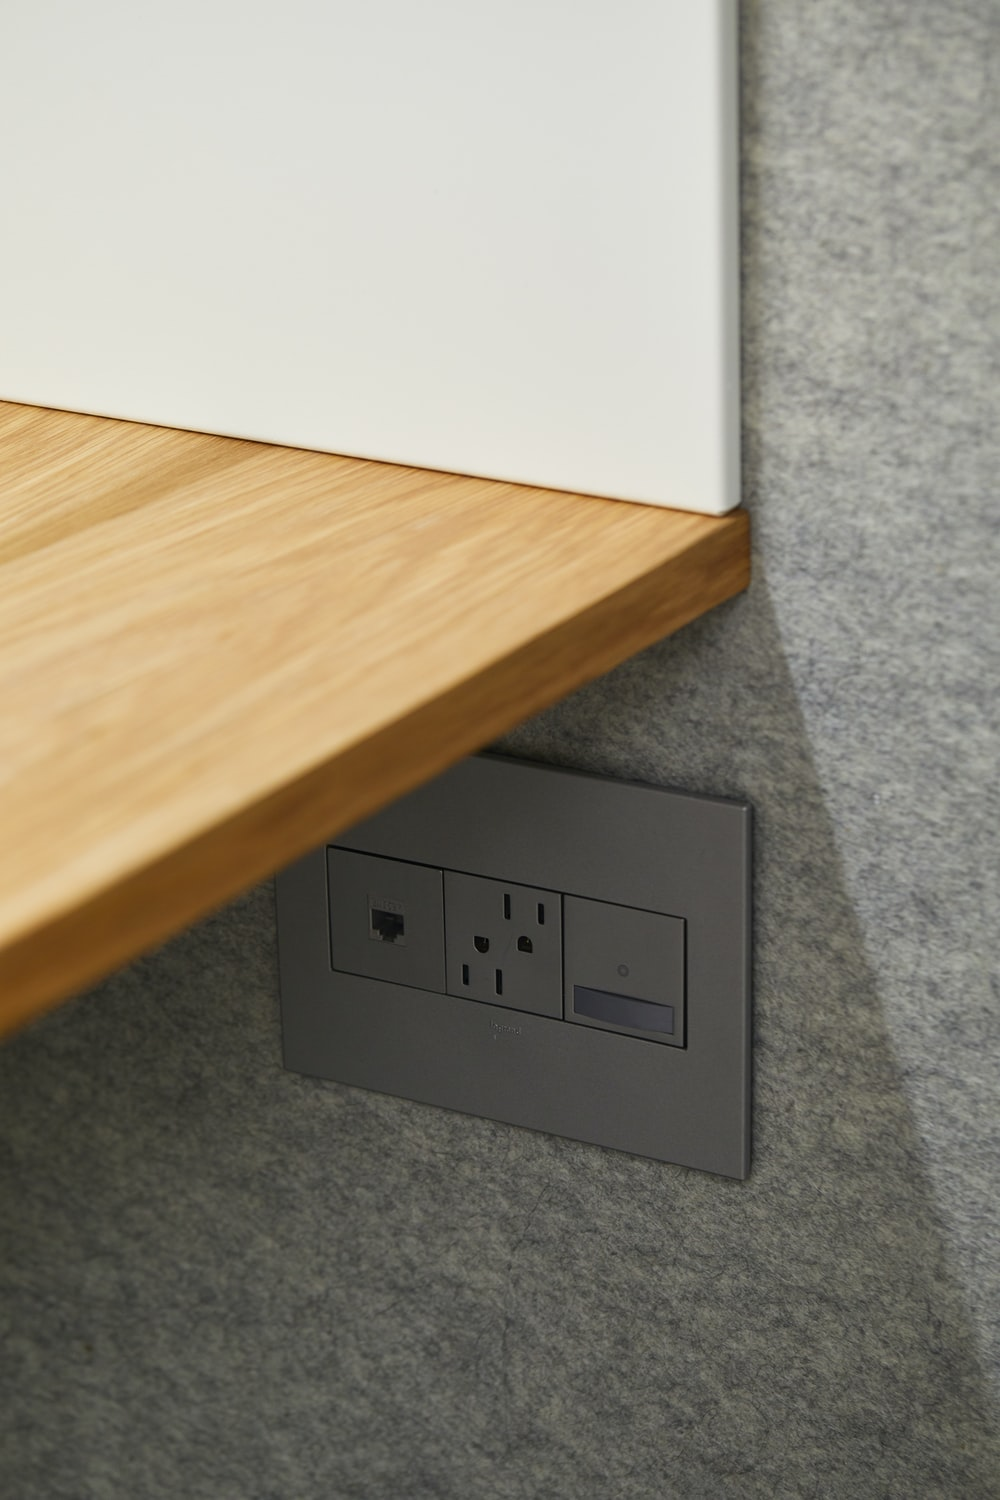 white wall electric socket